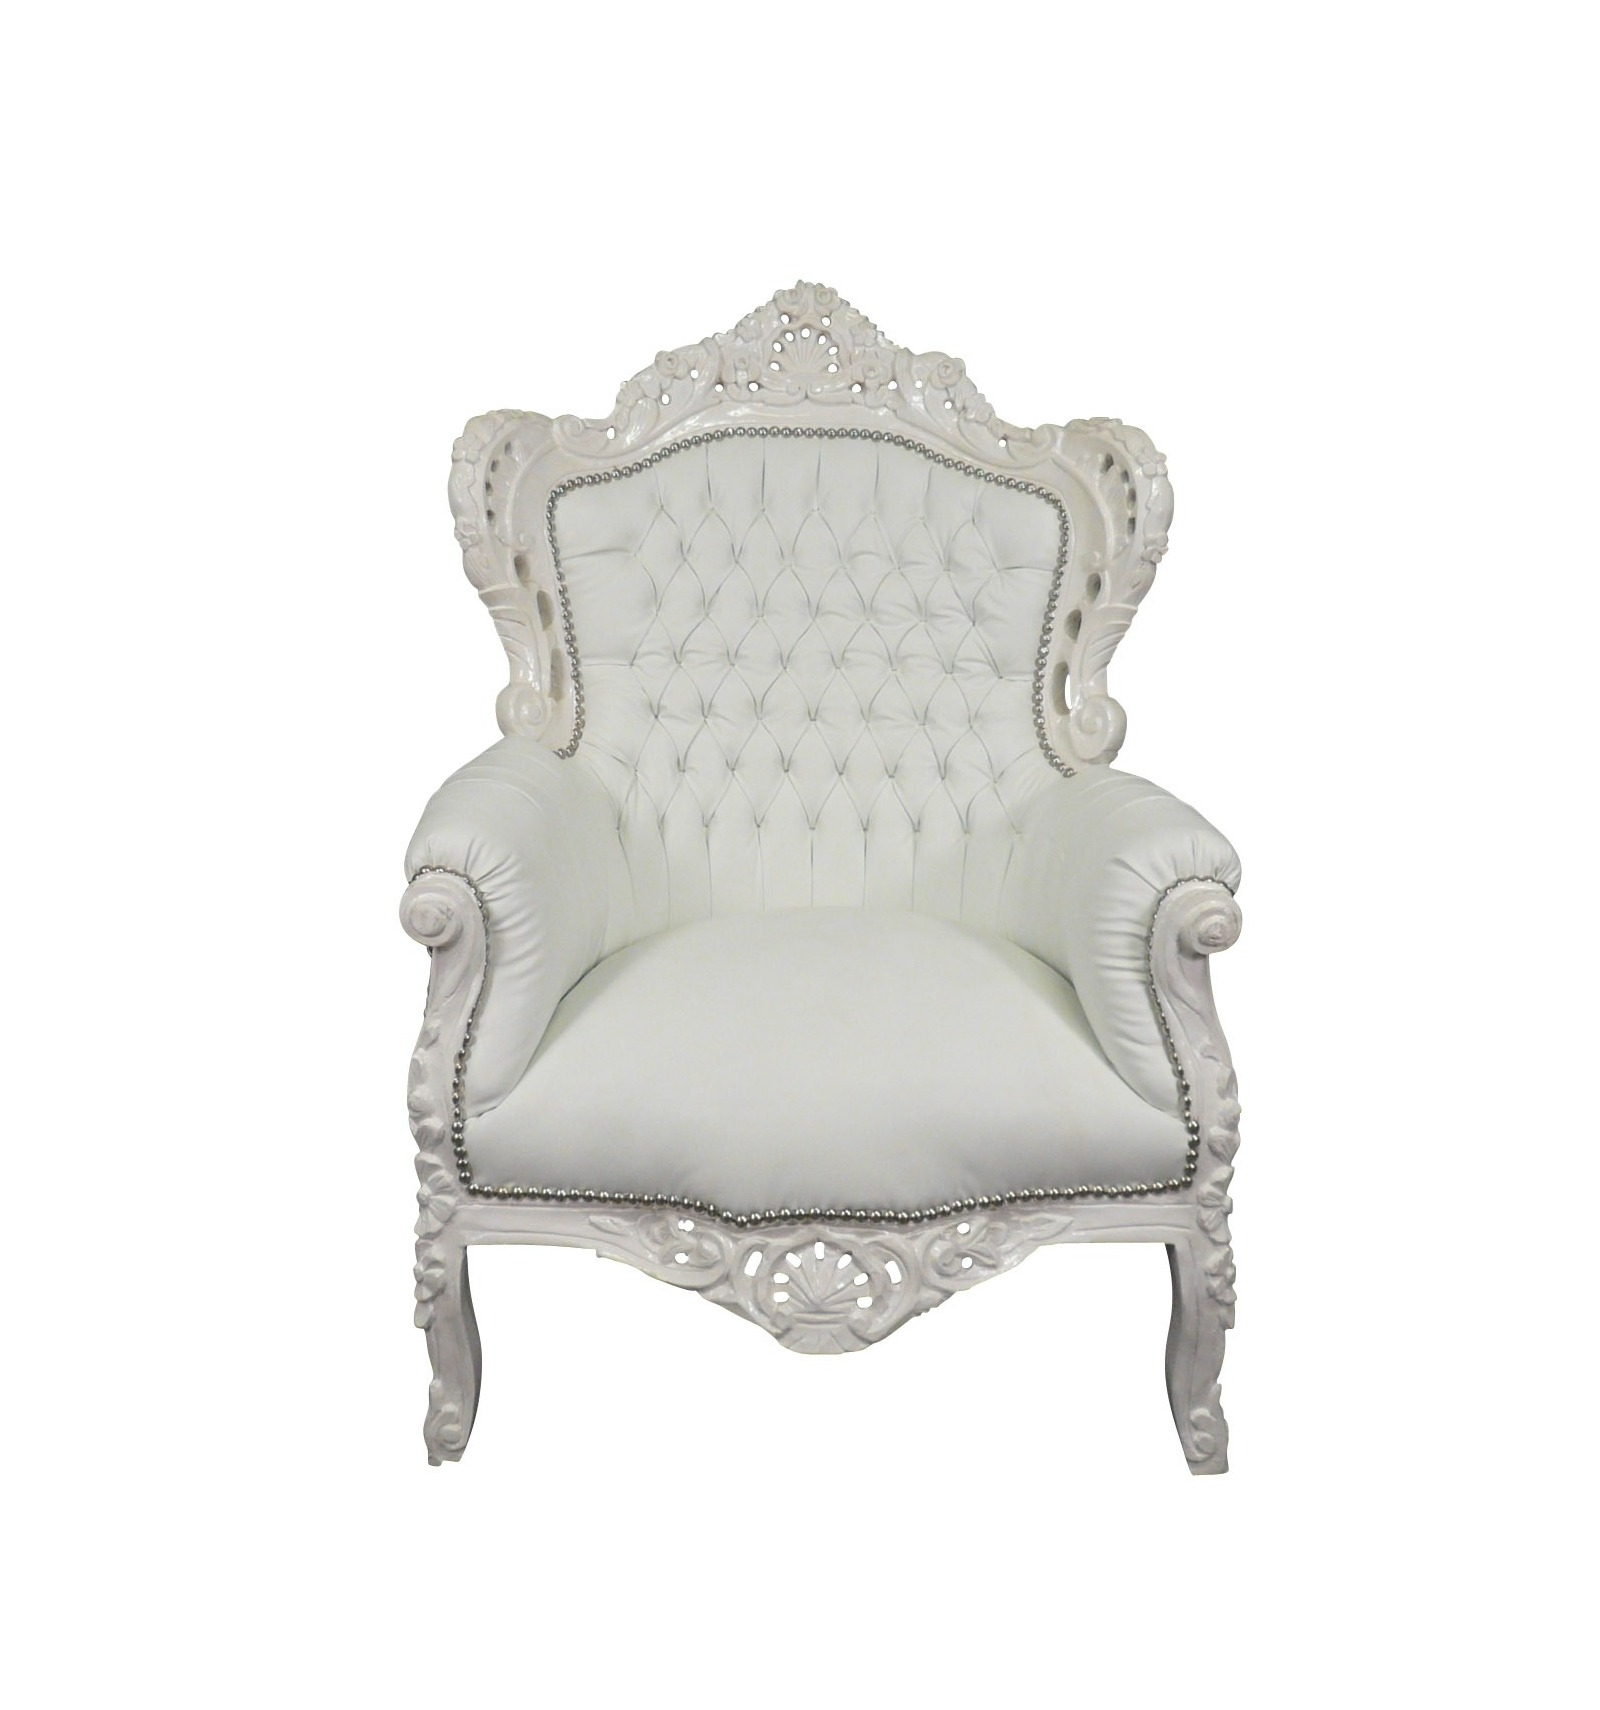 fauteuil baroque moderne gamboahinestrosa